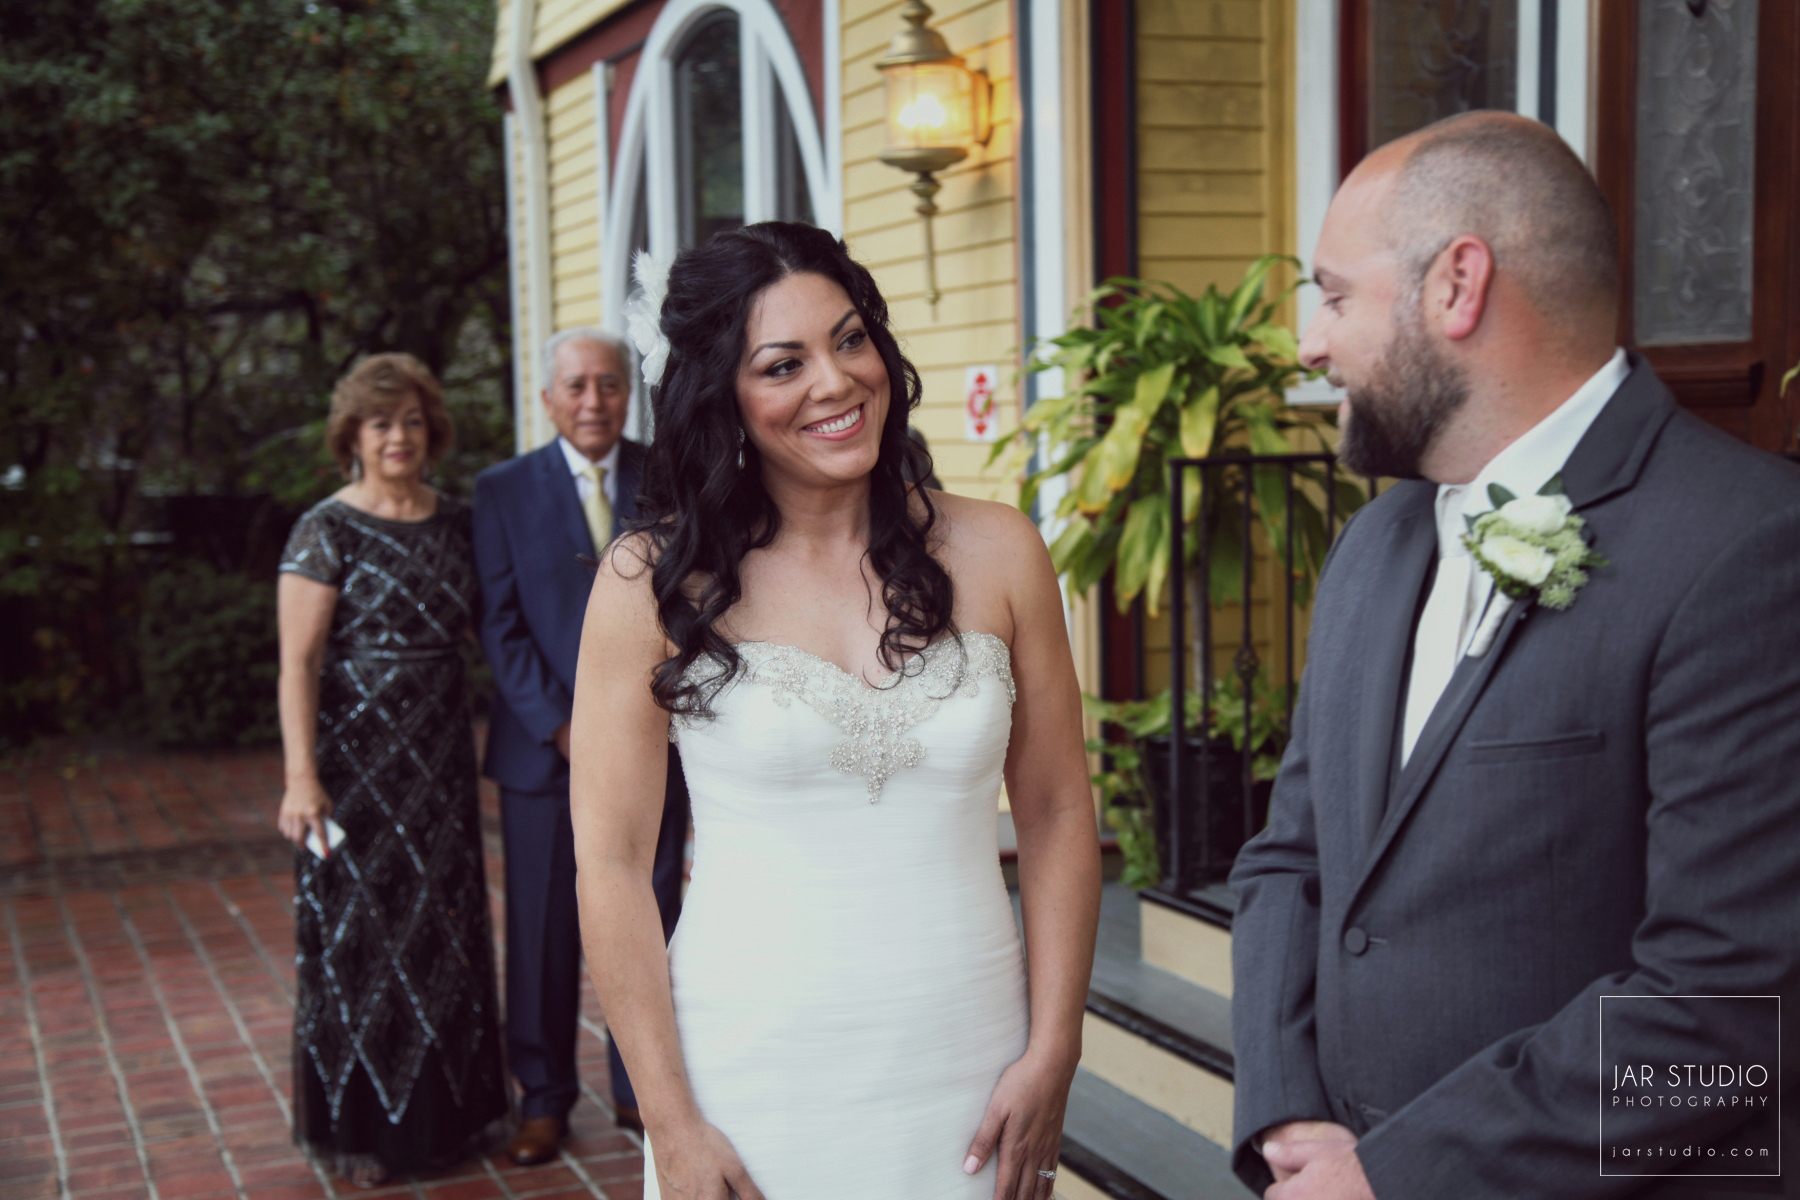 14-first-look-dr-phillips-house-jarstudio-wedding-photography.JPG